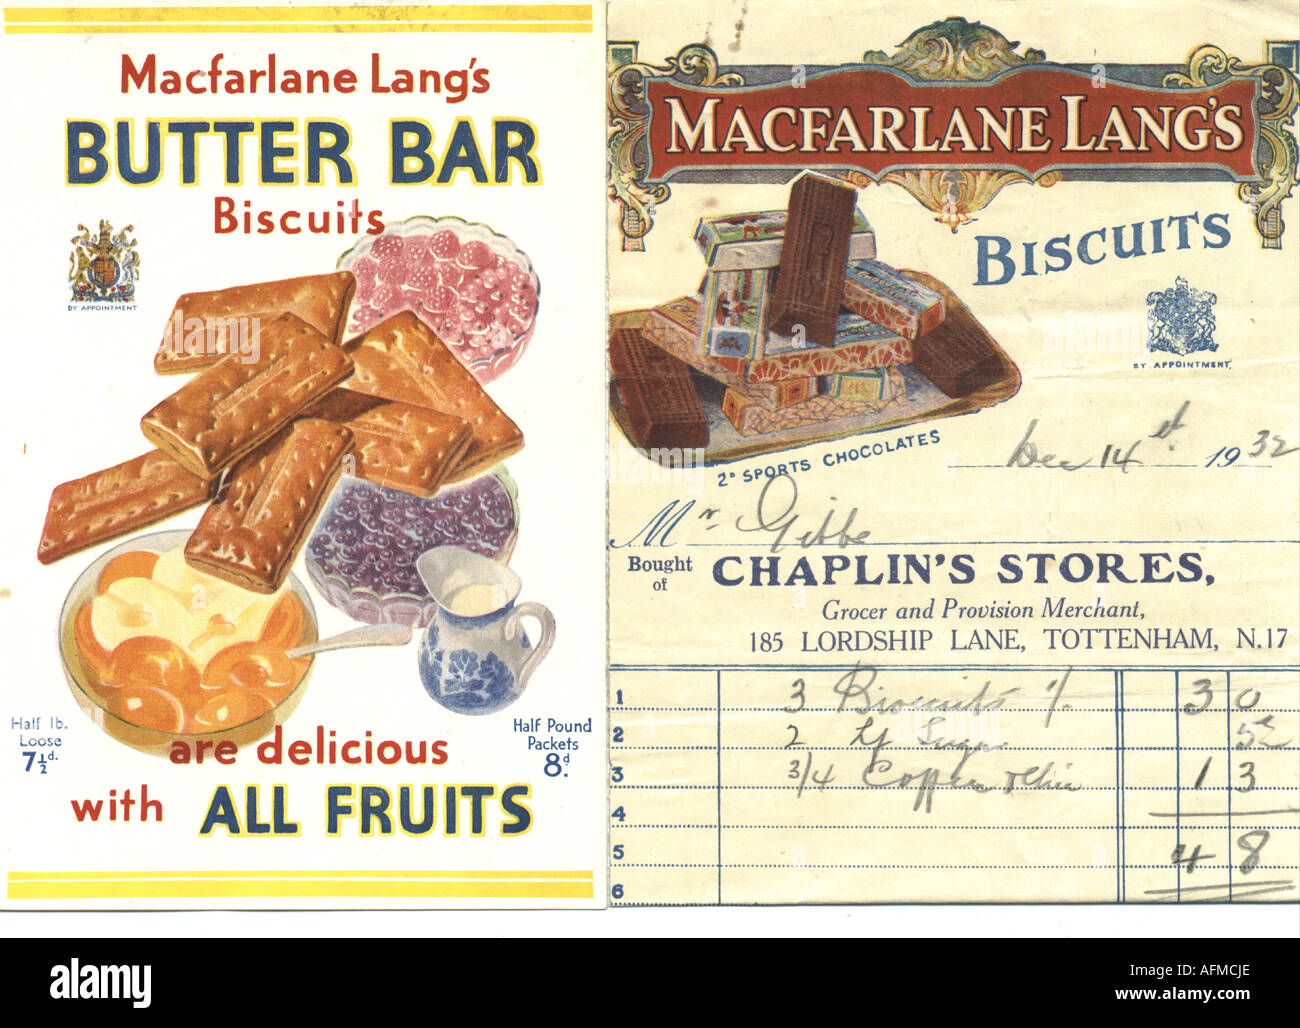 Pictorial bill head and advertisement for Macfarlane Lang's biscuits circa 1930 - Stock Image